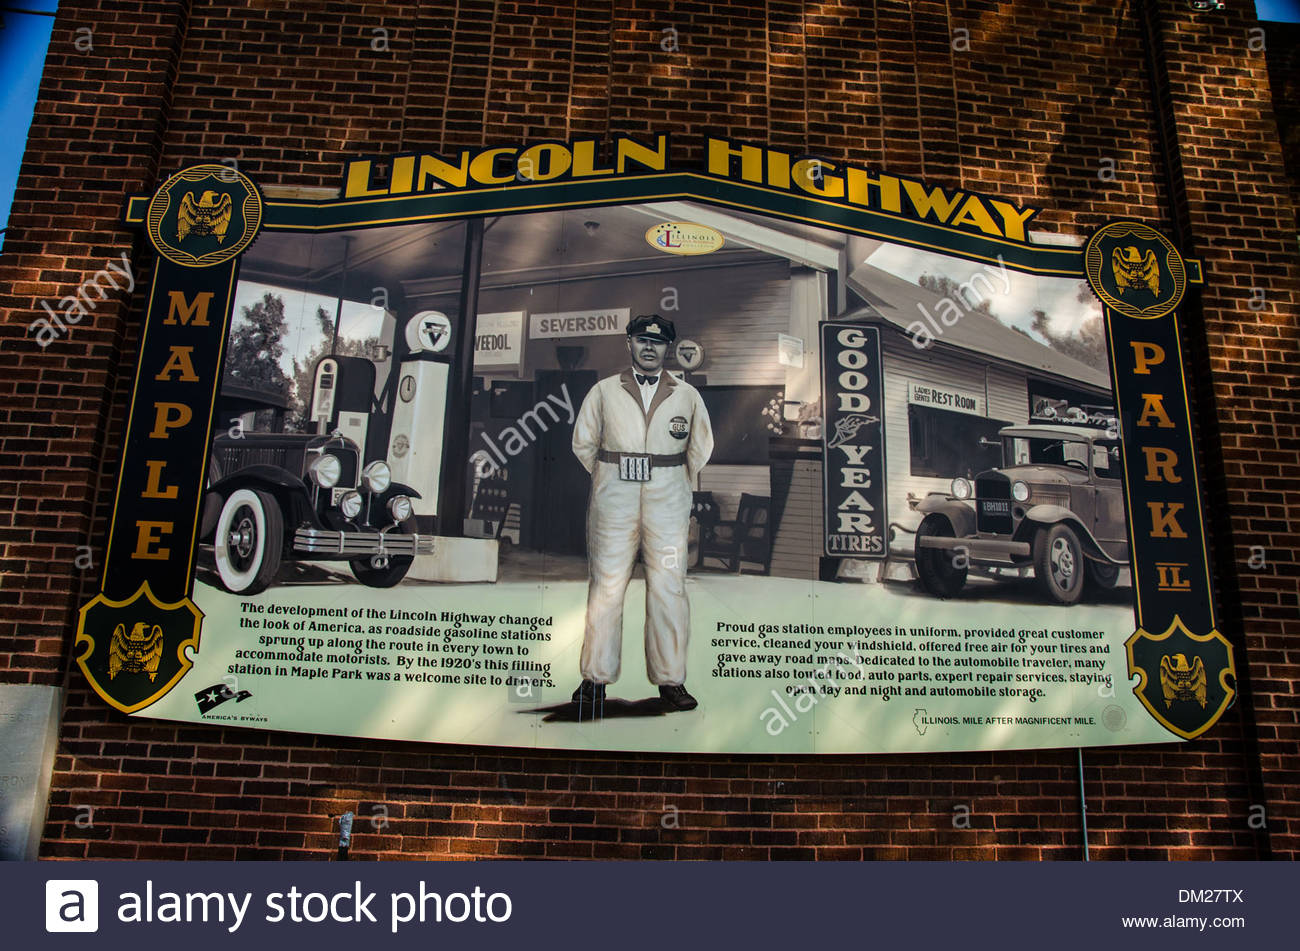 Lincoln Highway Interpretive Mural in Maple Park, Illinois, a town along the Lincoln Highway - Stock Image